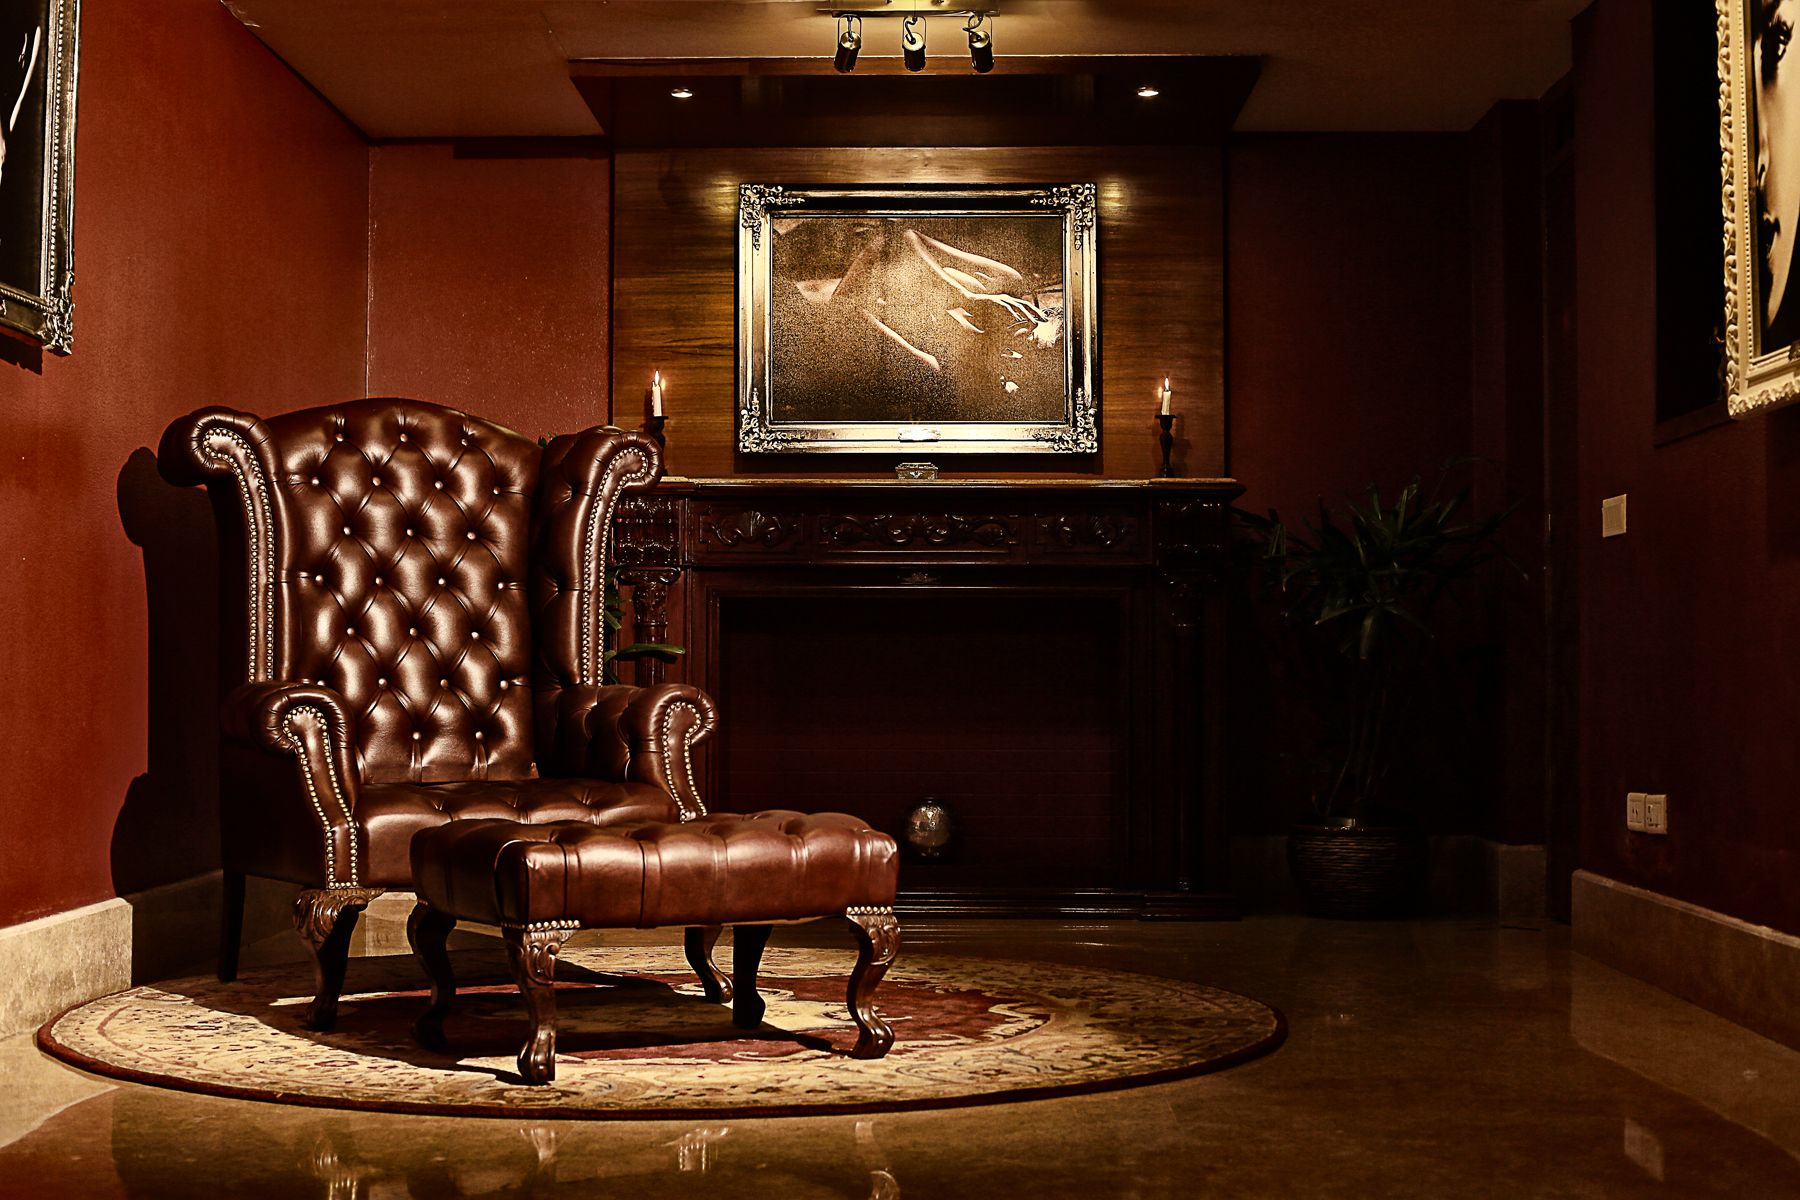 The majestic uwinchester chair with foot restu made in fine leather